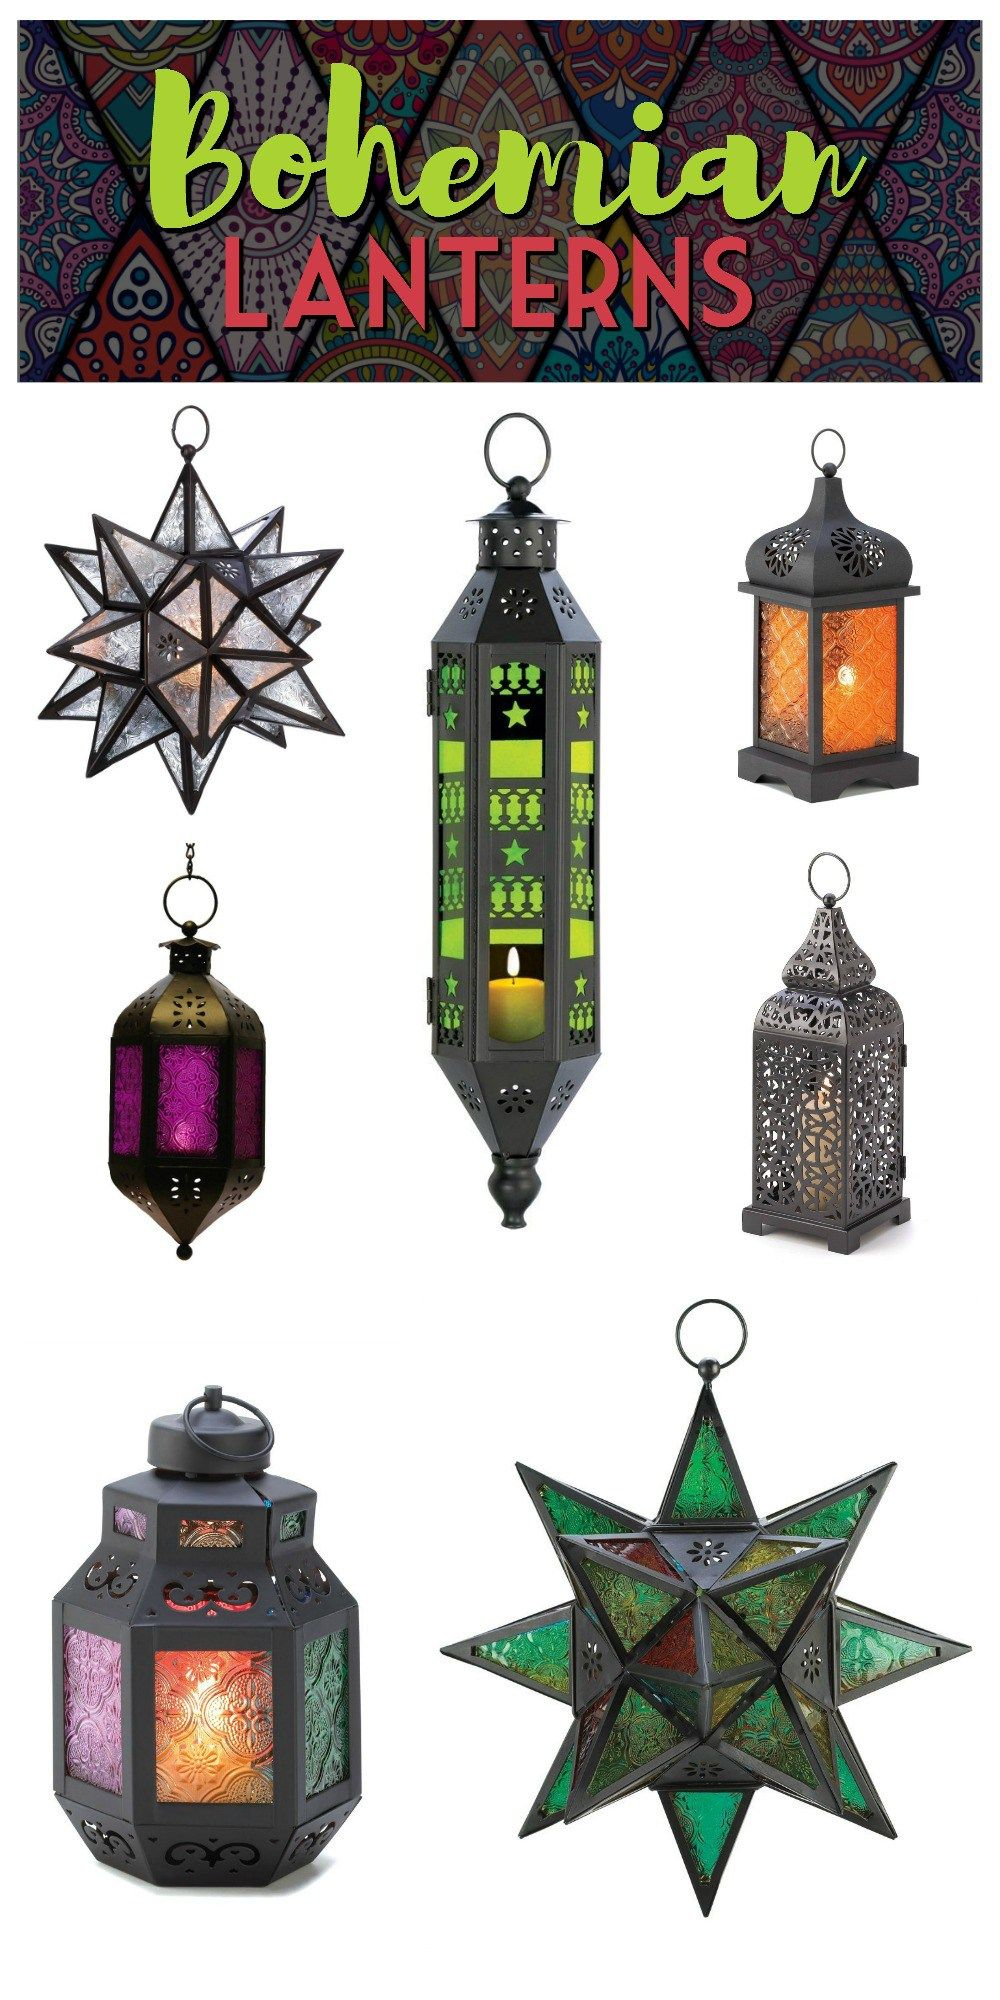 Exotic moroccan bedroom decorating light and deep purple colors - Bohemian Decor Moroccan Lanterns Where To Find